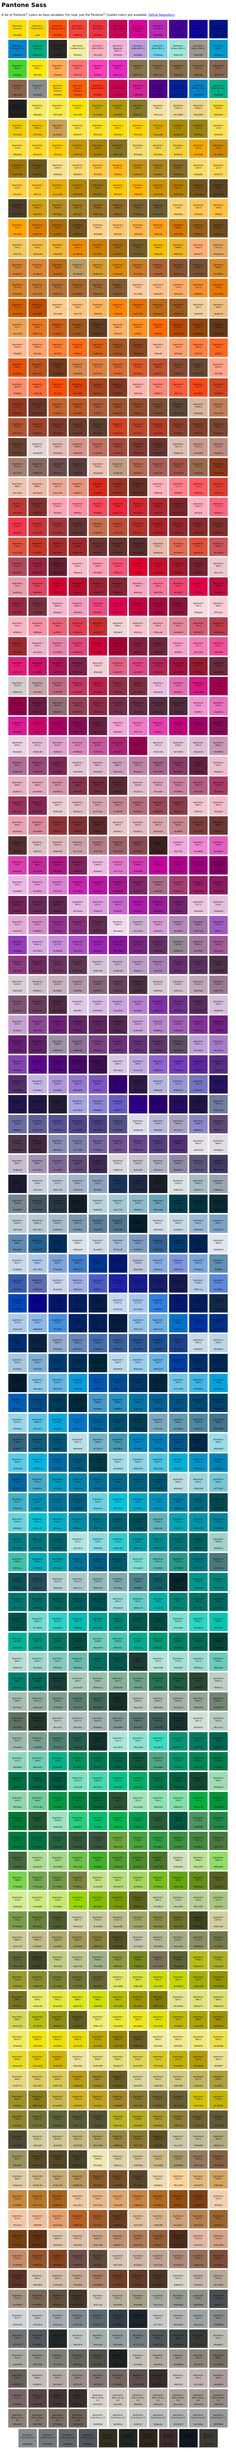 Psychology infographic and charts Sass pantone colours? Colour Schemes, Color Patterns, Color Combinations, Web Design, Colour Board, Color Swatches, Copics, Color Names, Color Pallets